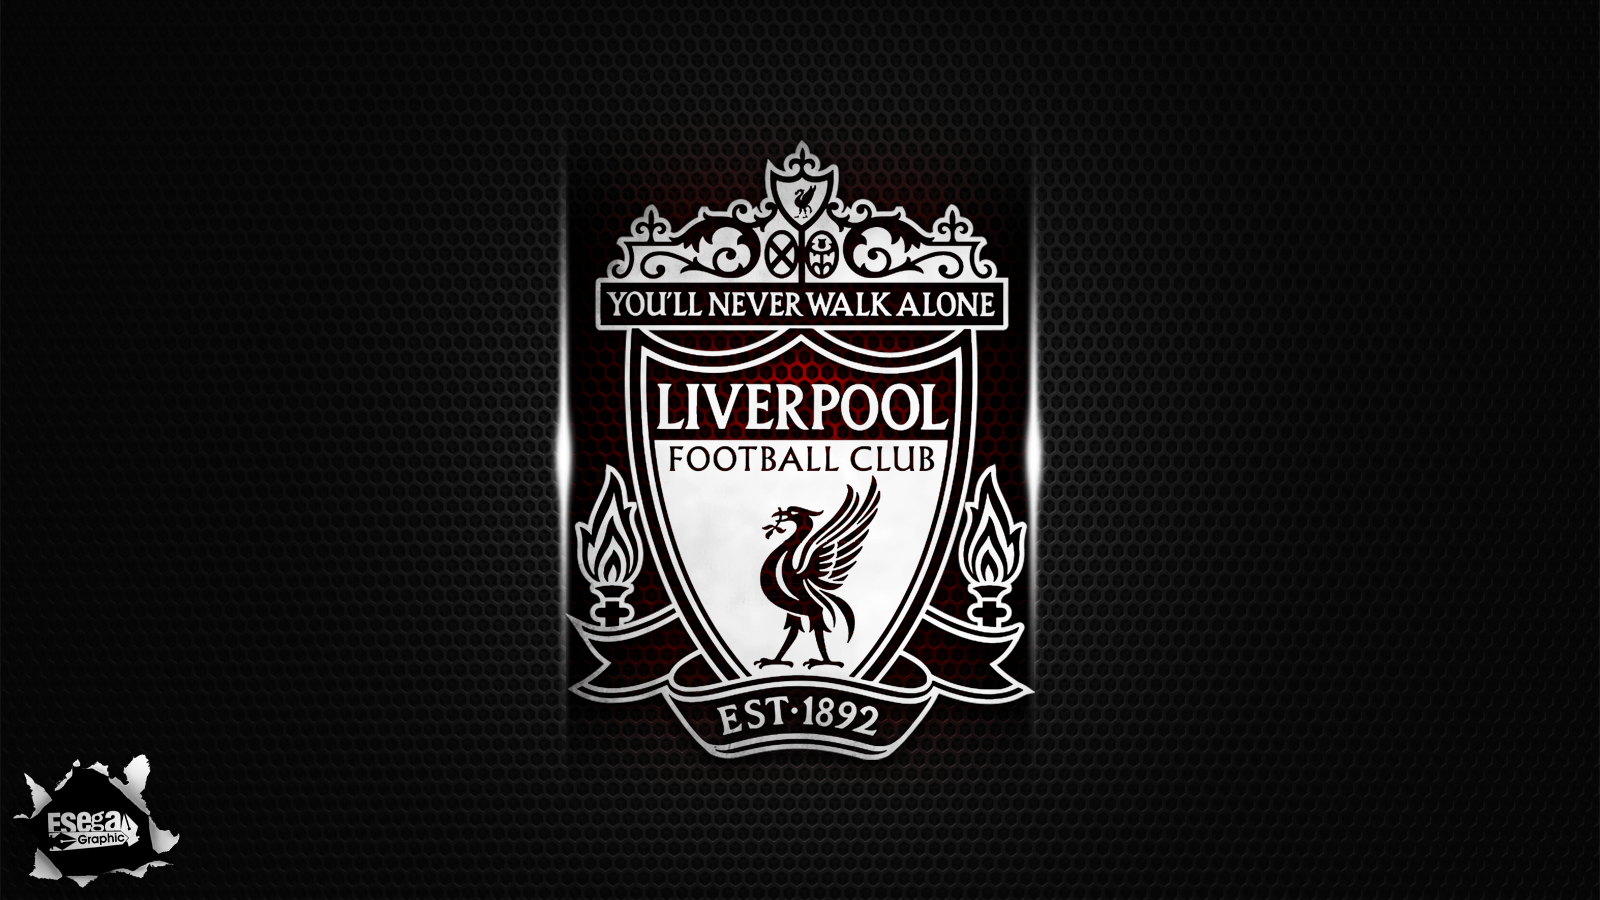 liverpool wallpapers for pc - photo #2